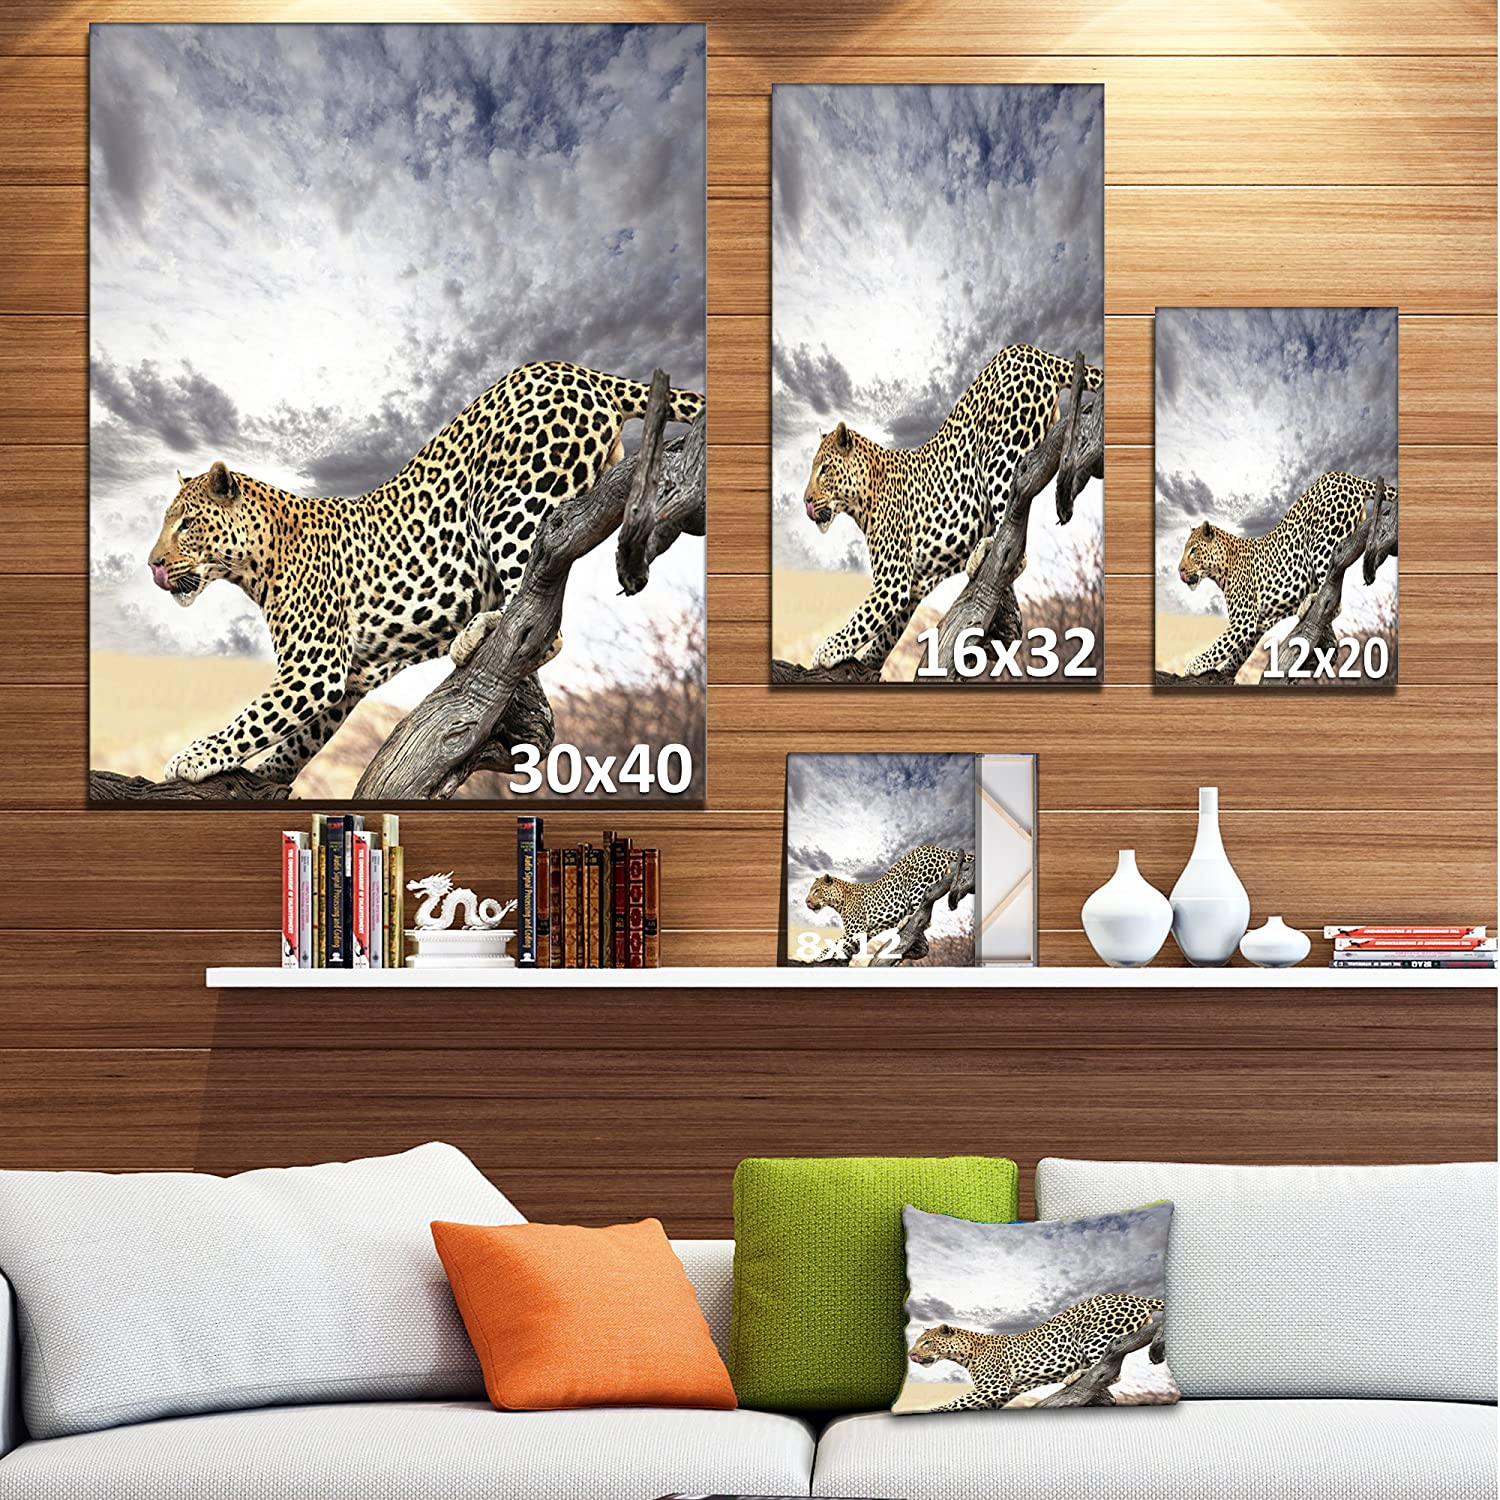 Leather 12x12 Abstract AUTUMN PASTELS on LEOPARD on White Soft Cowhide 3.25-3.5oz1.3-1.5mm PeggySueAlso\u2122 E2550-25